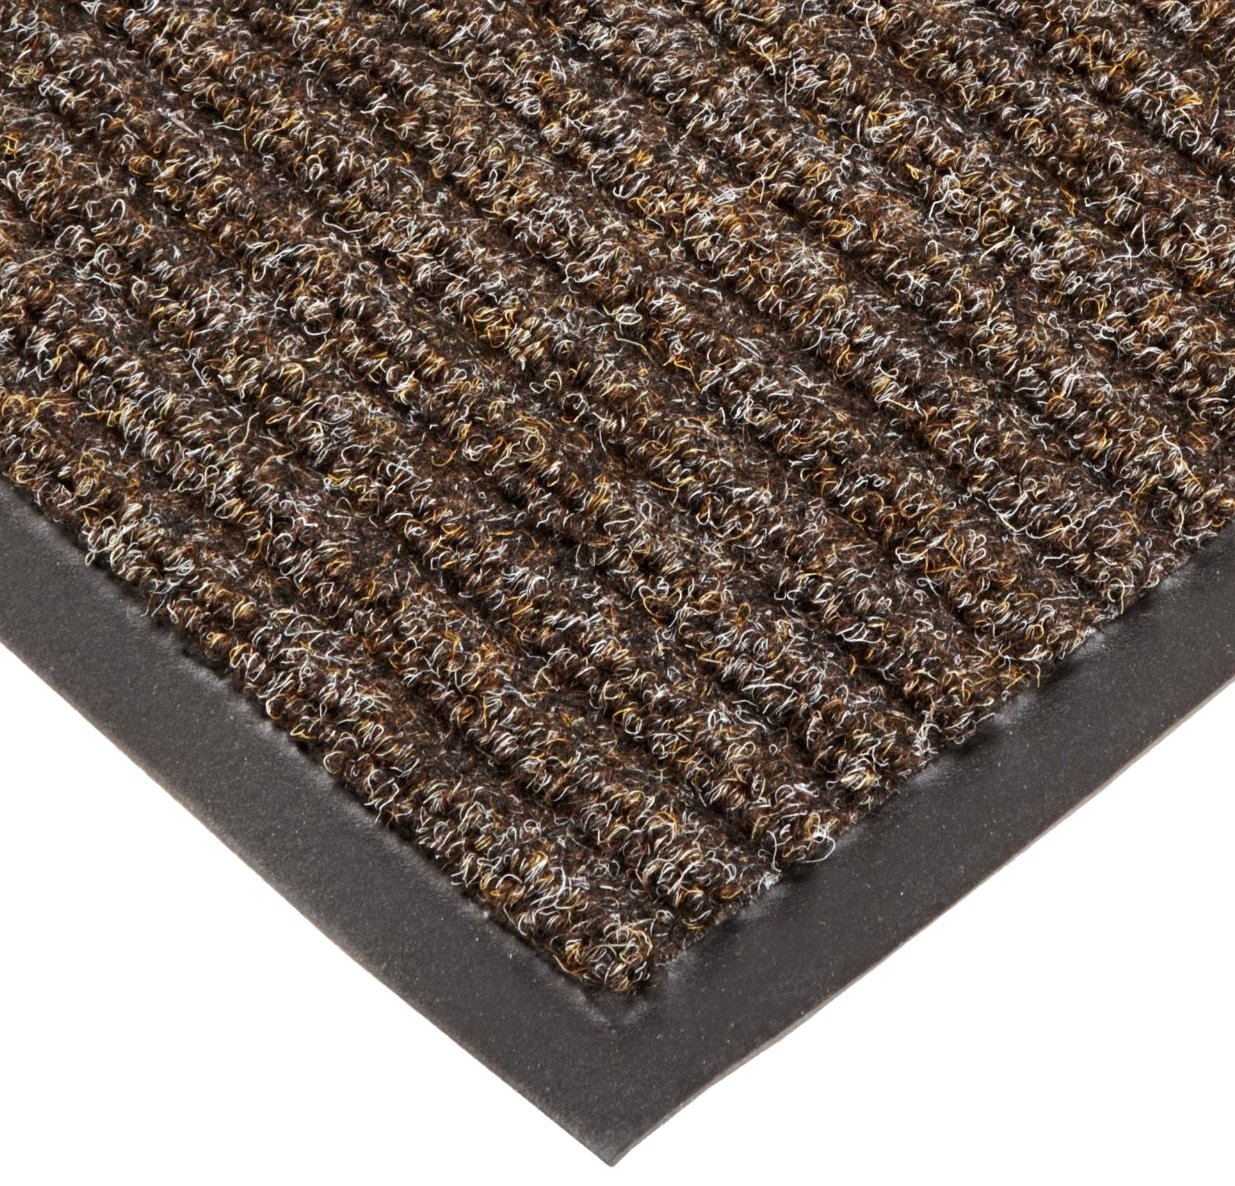 NoTrax T39 Bristol Ridge Scraper Carpet Mat, for Wet and Dry Areas, 3' Width x 10' Length x 3/8'' Thickness, Coffee